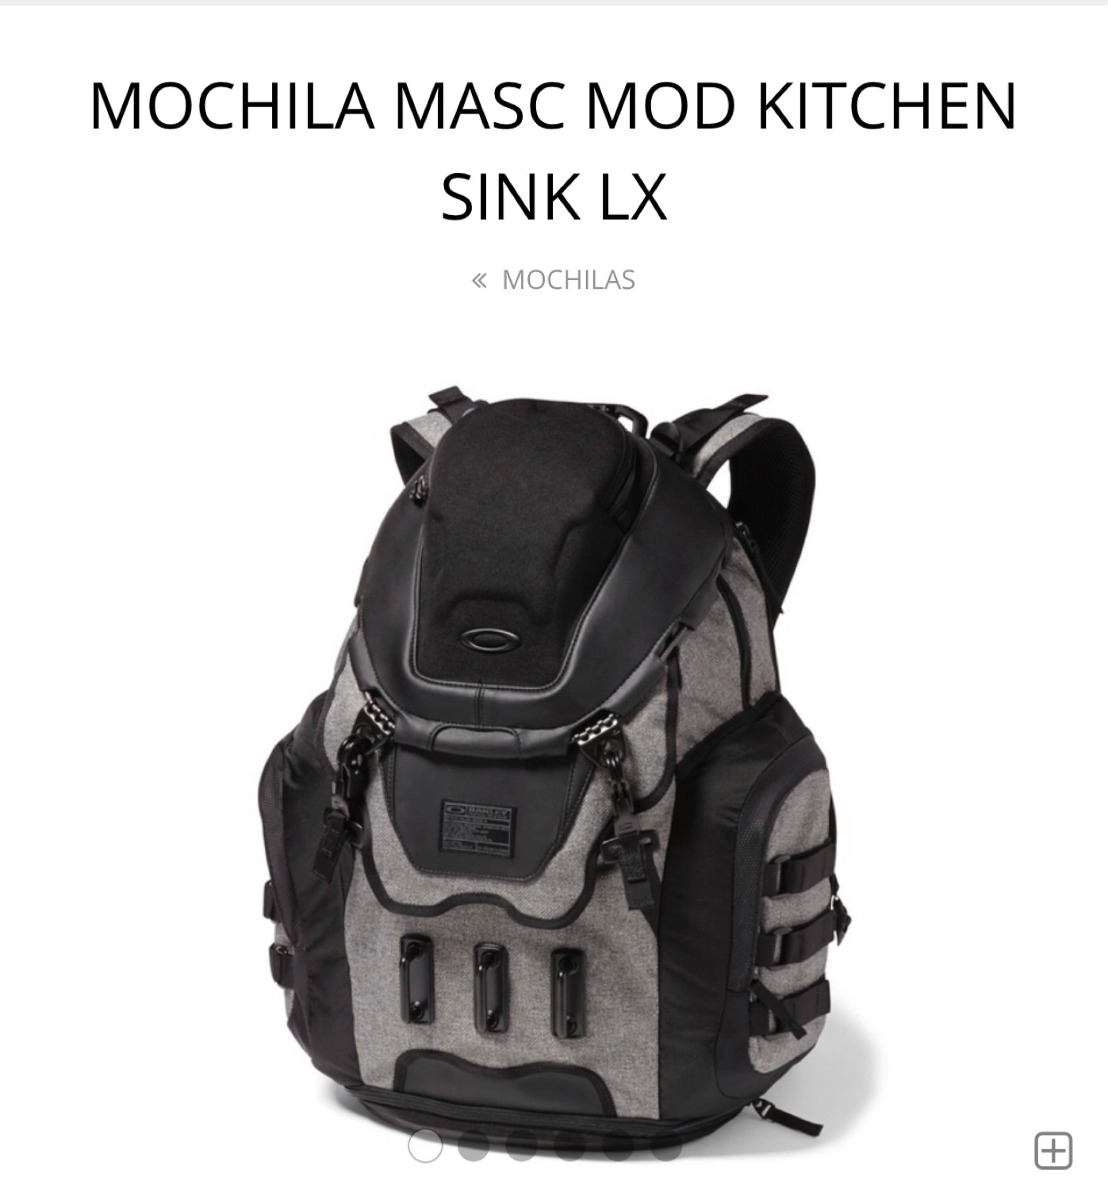 904f172939e77 mochila oakley kitchen sink lx original. Carregando zoom.